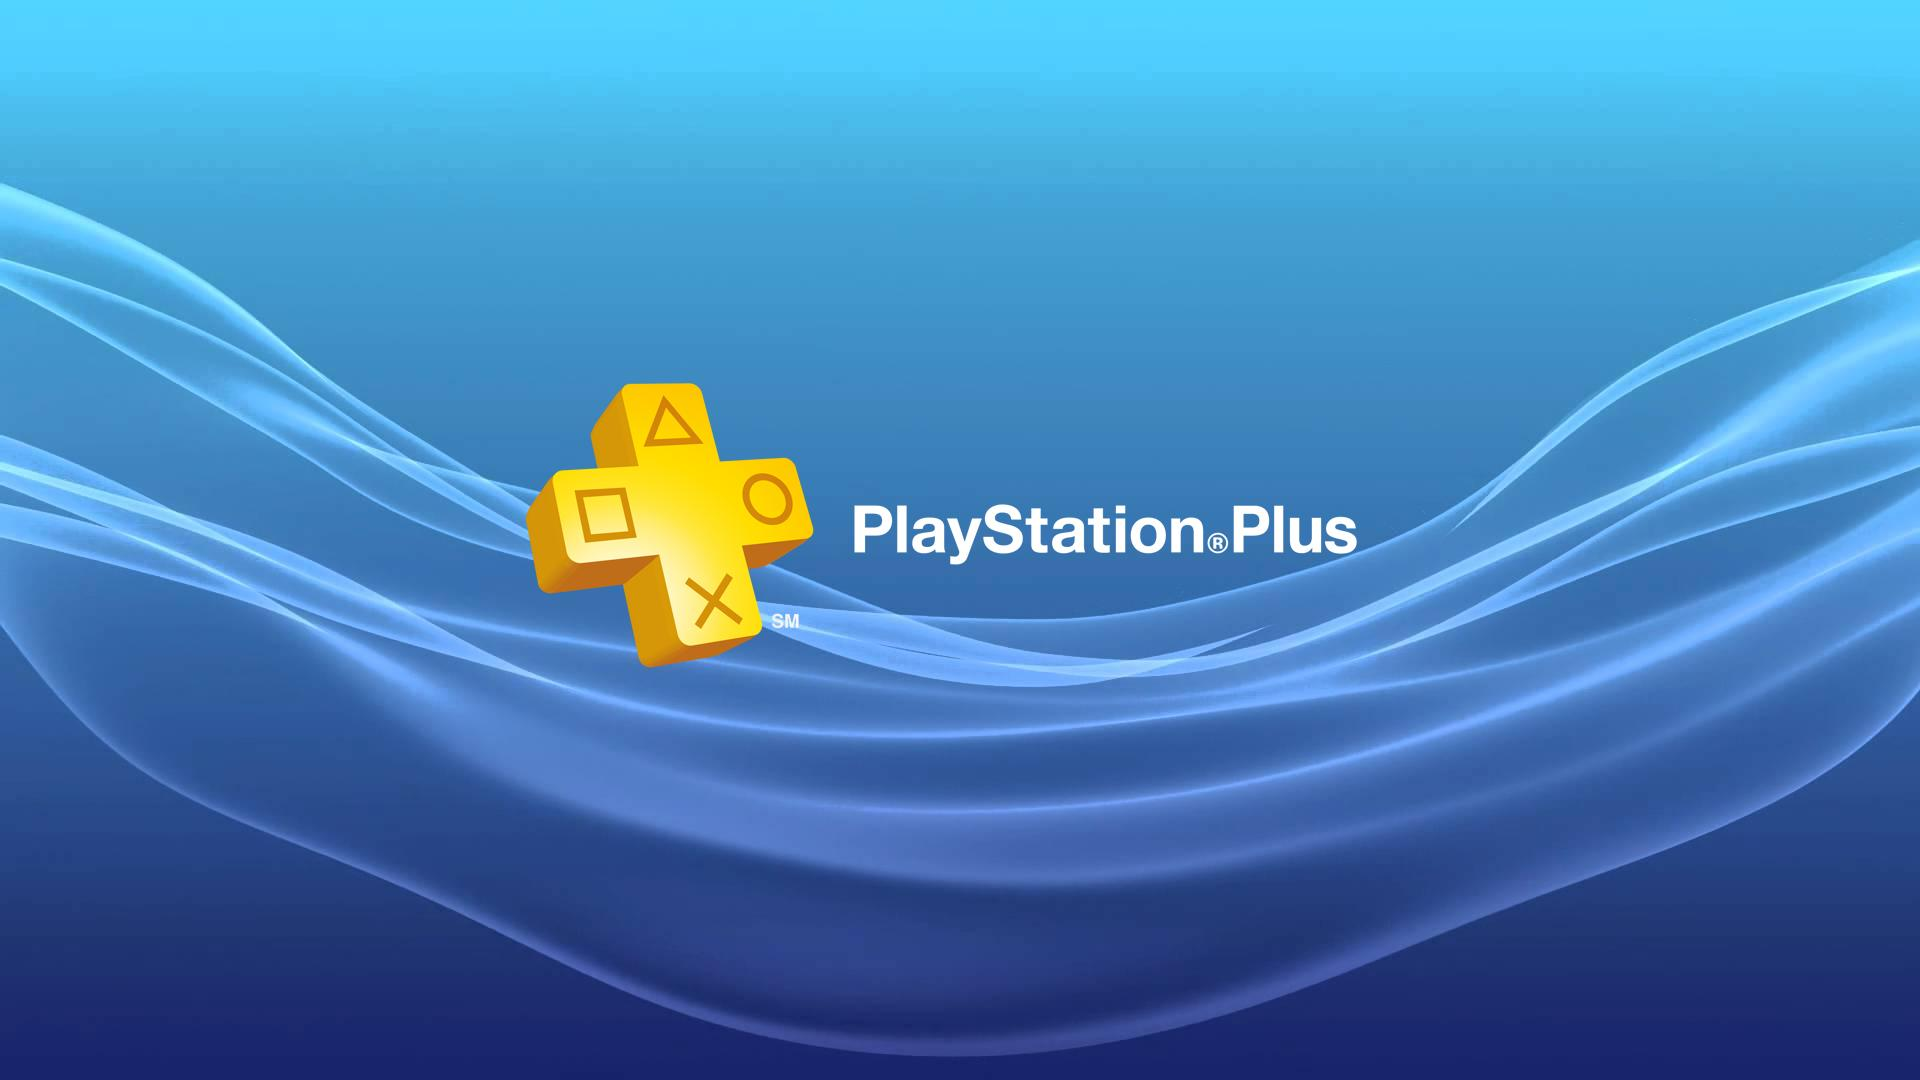 wp6001207-playstation-plus-wallpapers